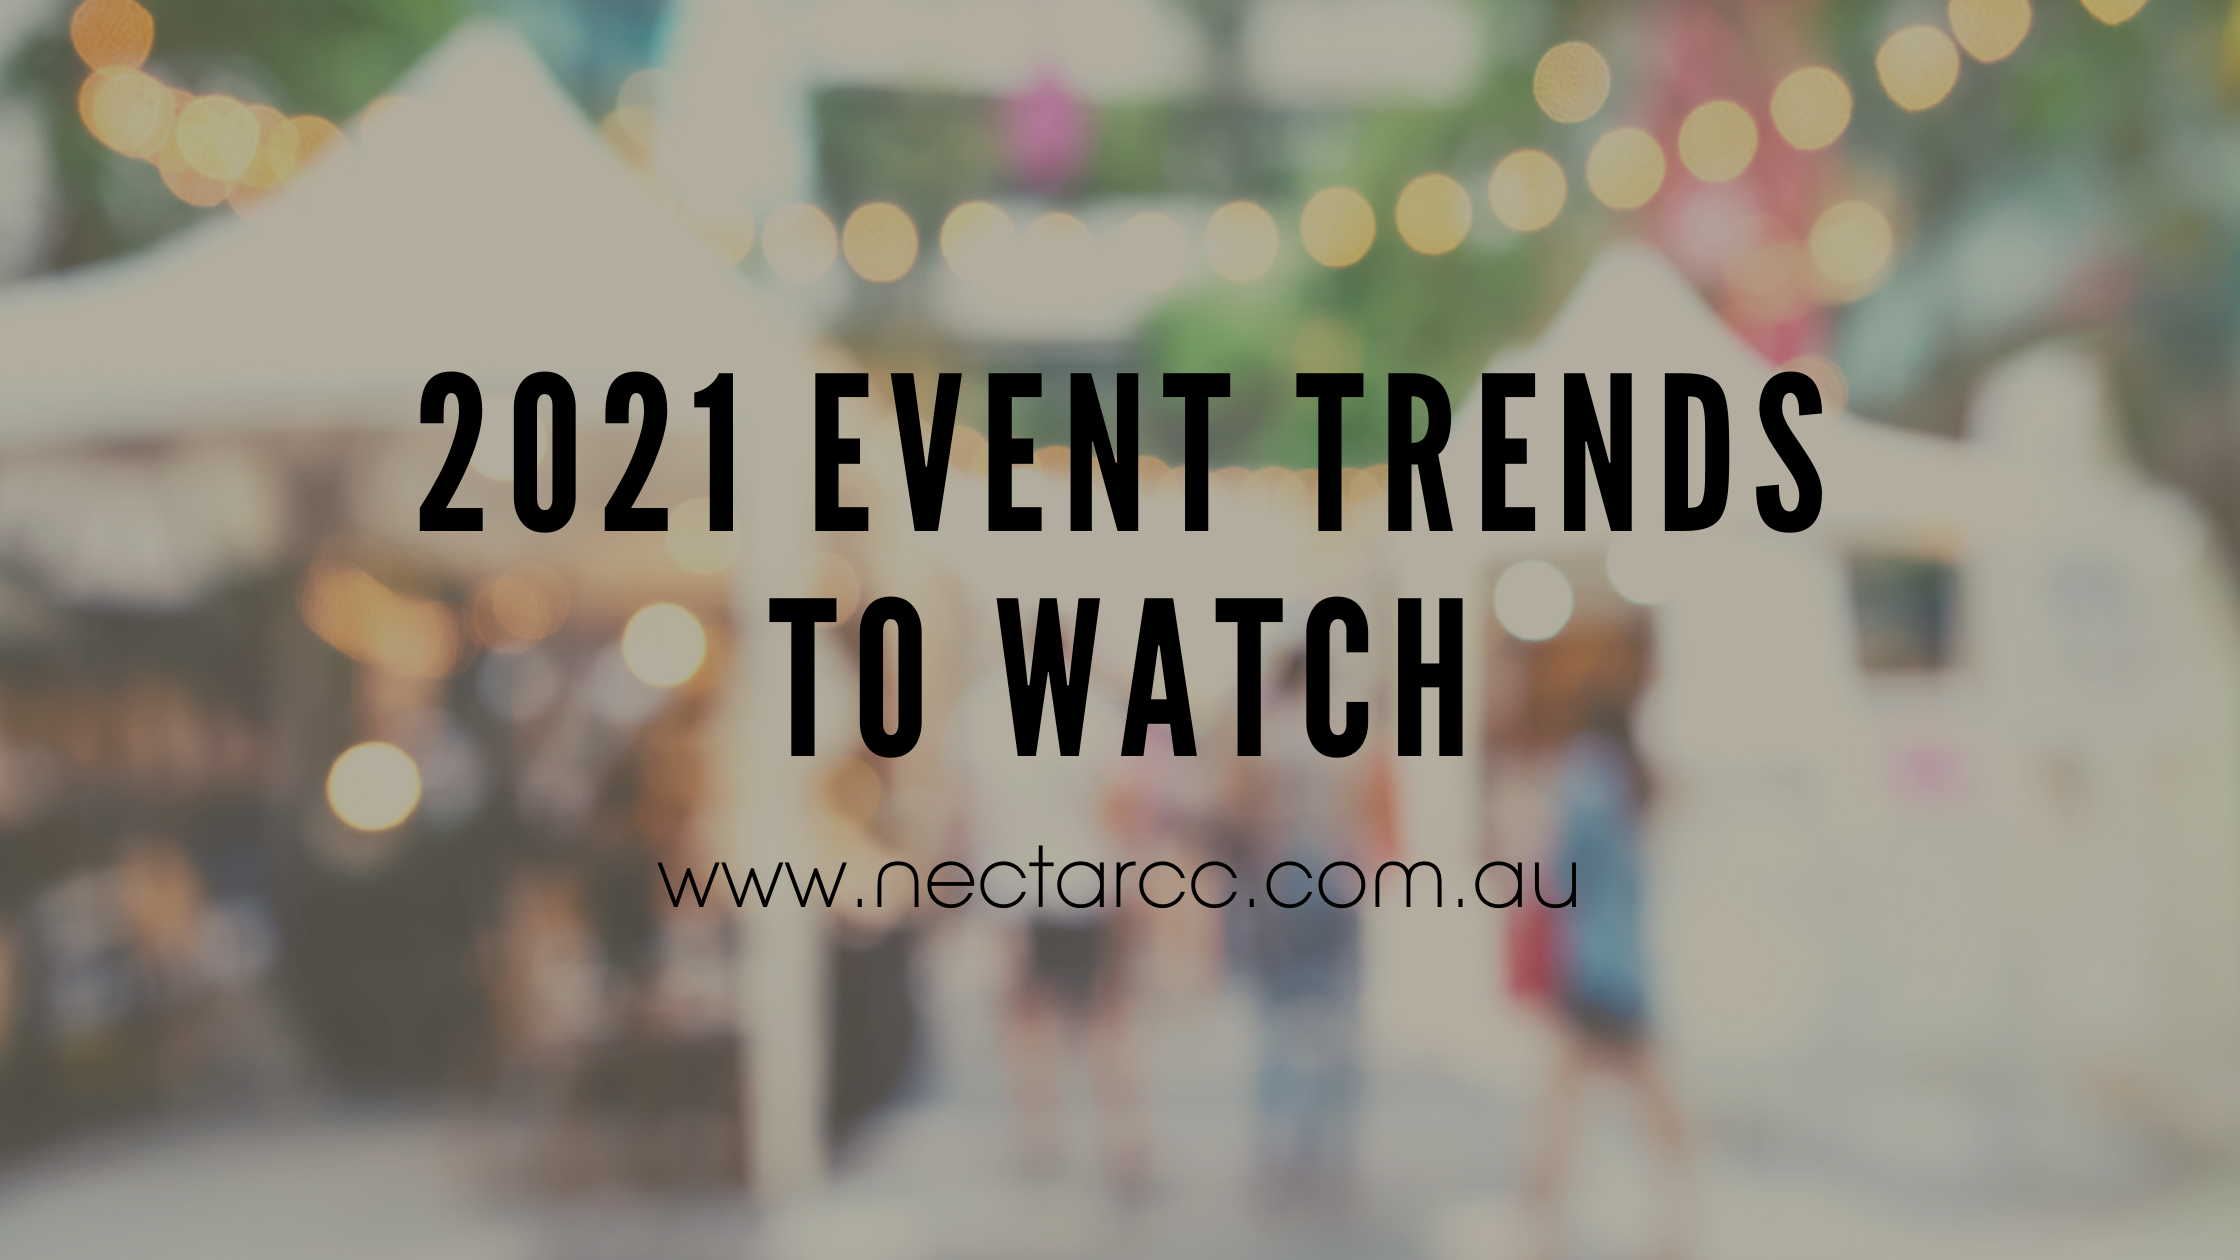 2021 event trends